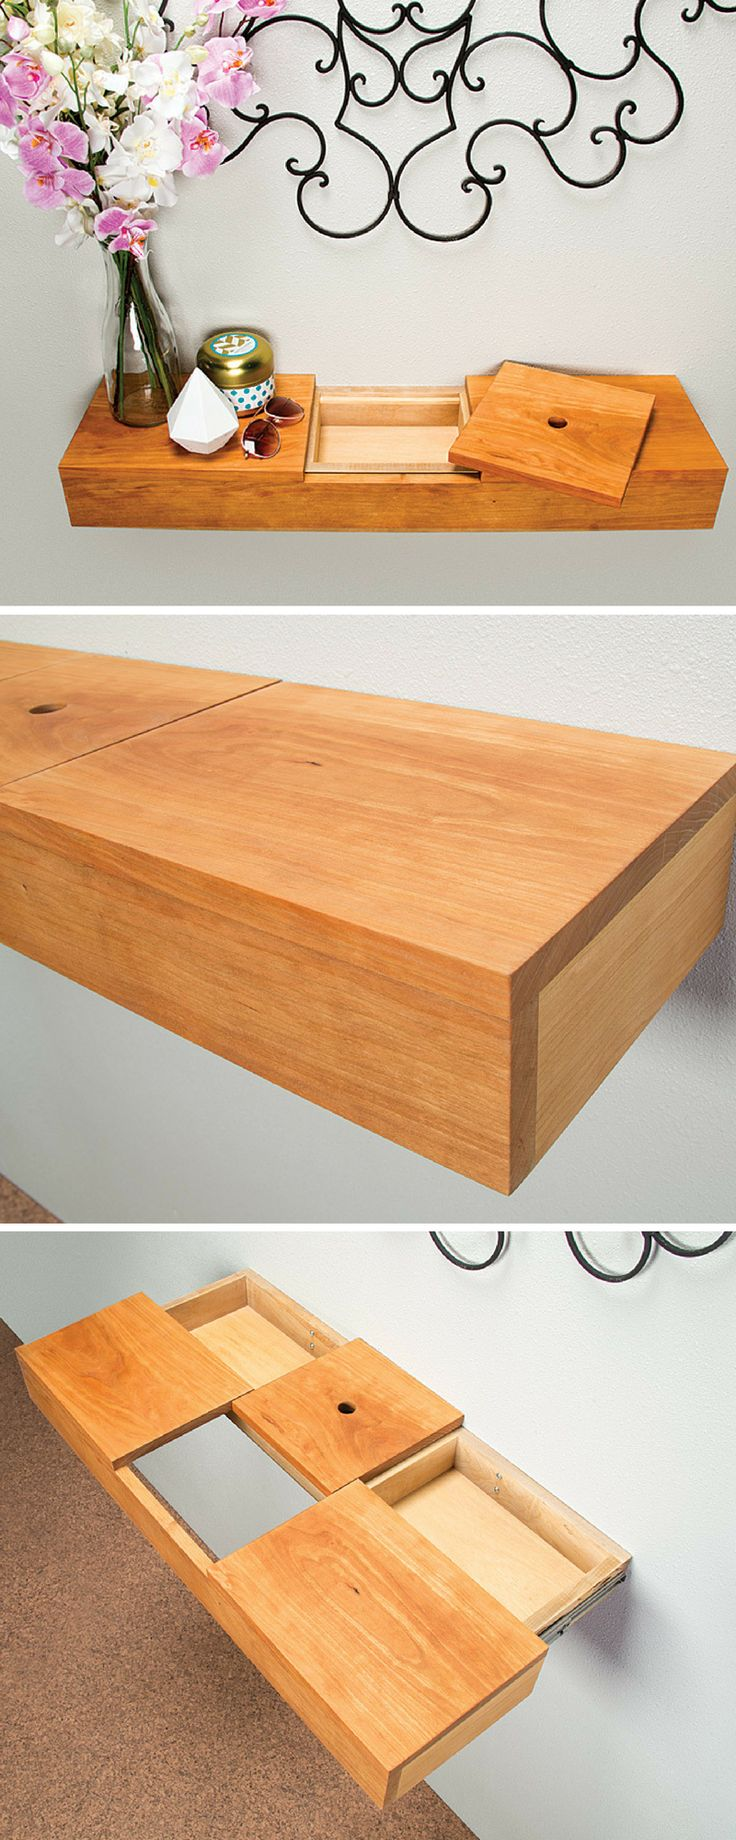 best woodworking images on pinterest carpentry woodworking